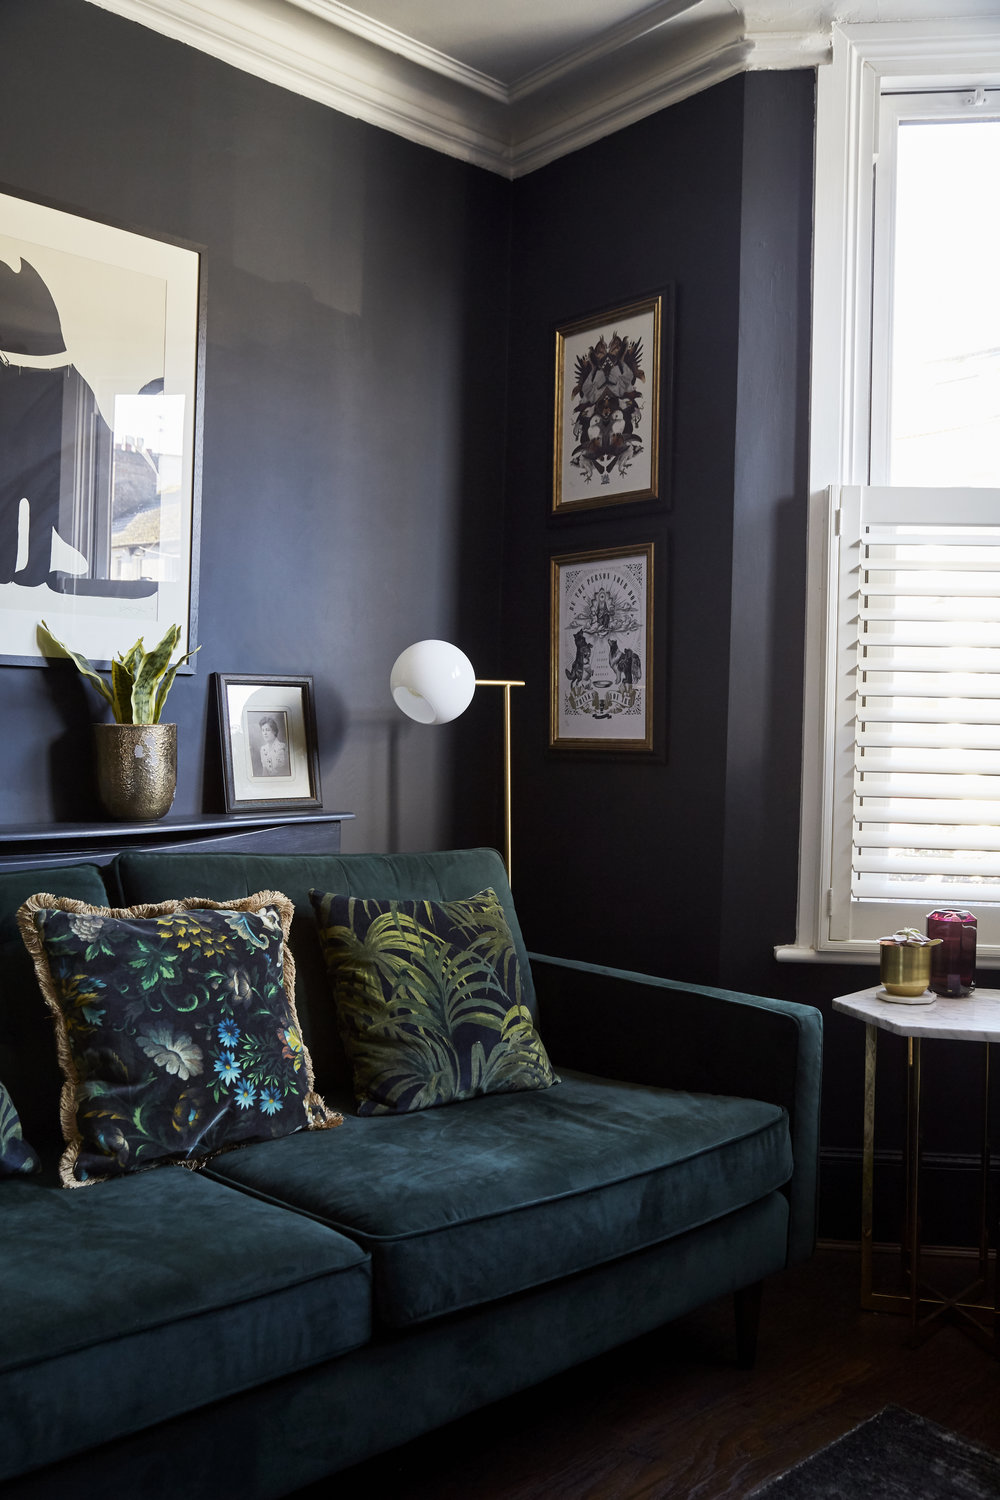 Drake Green velvet sofa   £999,   West Elm    ;    Staggered glass floor lamp    £199,    West Elm   ;    Distressed Arabesque Wool Rug - Steel   £449, From   West Elm  . Pair of prints on the wall are from   Divine Savages